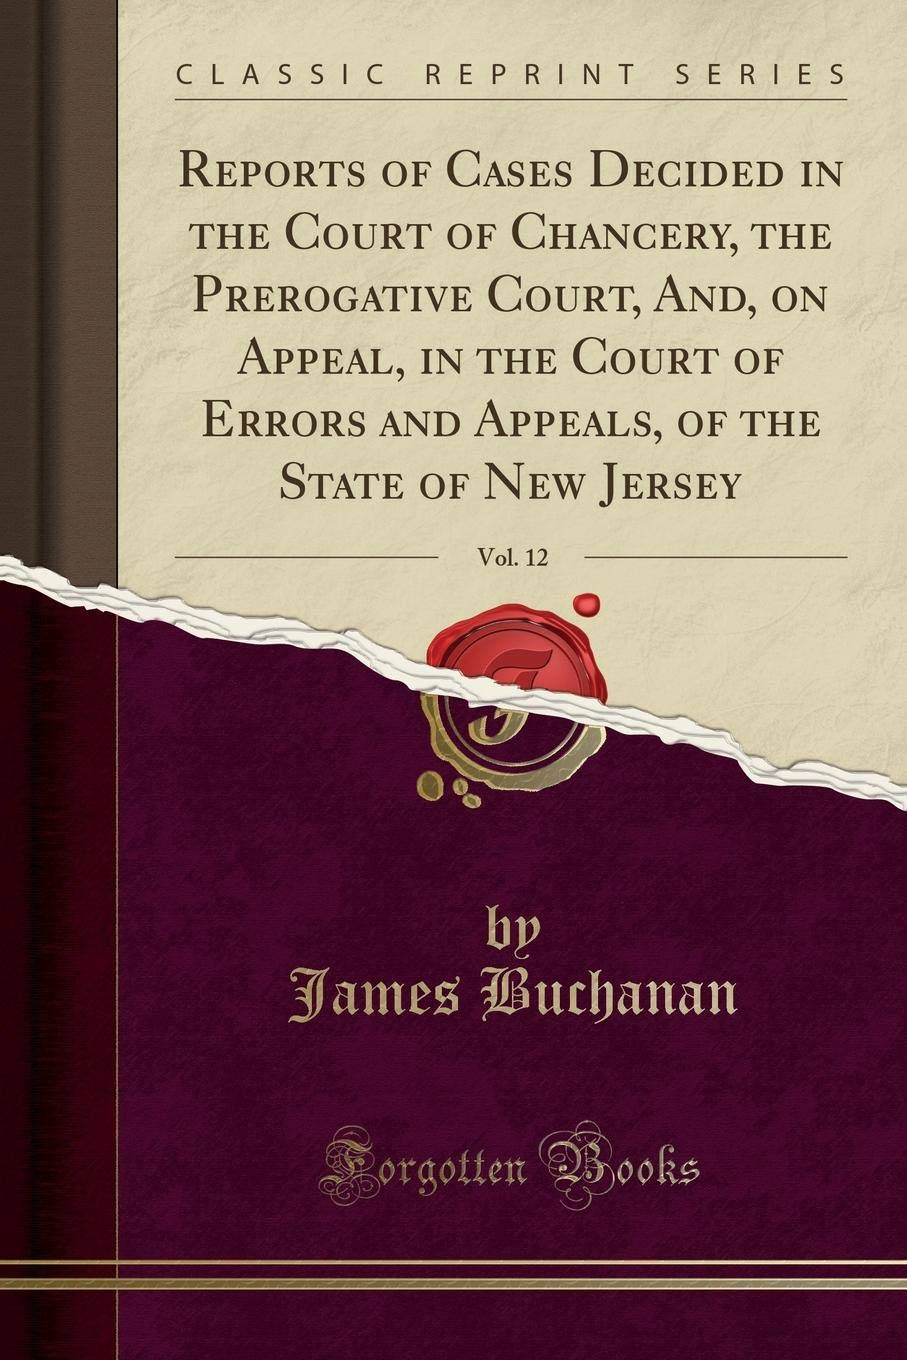 Reports of Cases Decided in the Court of Chancery, the Prerogative Court, And, on Appeal, in the Court of Errors and Appeals, of the State of New Jersey, Vol. 12 (Classic Reprint) PDF